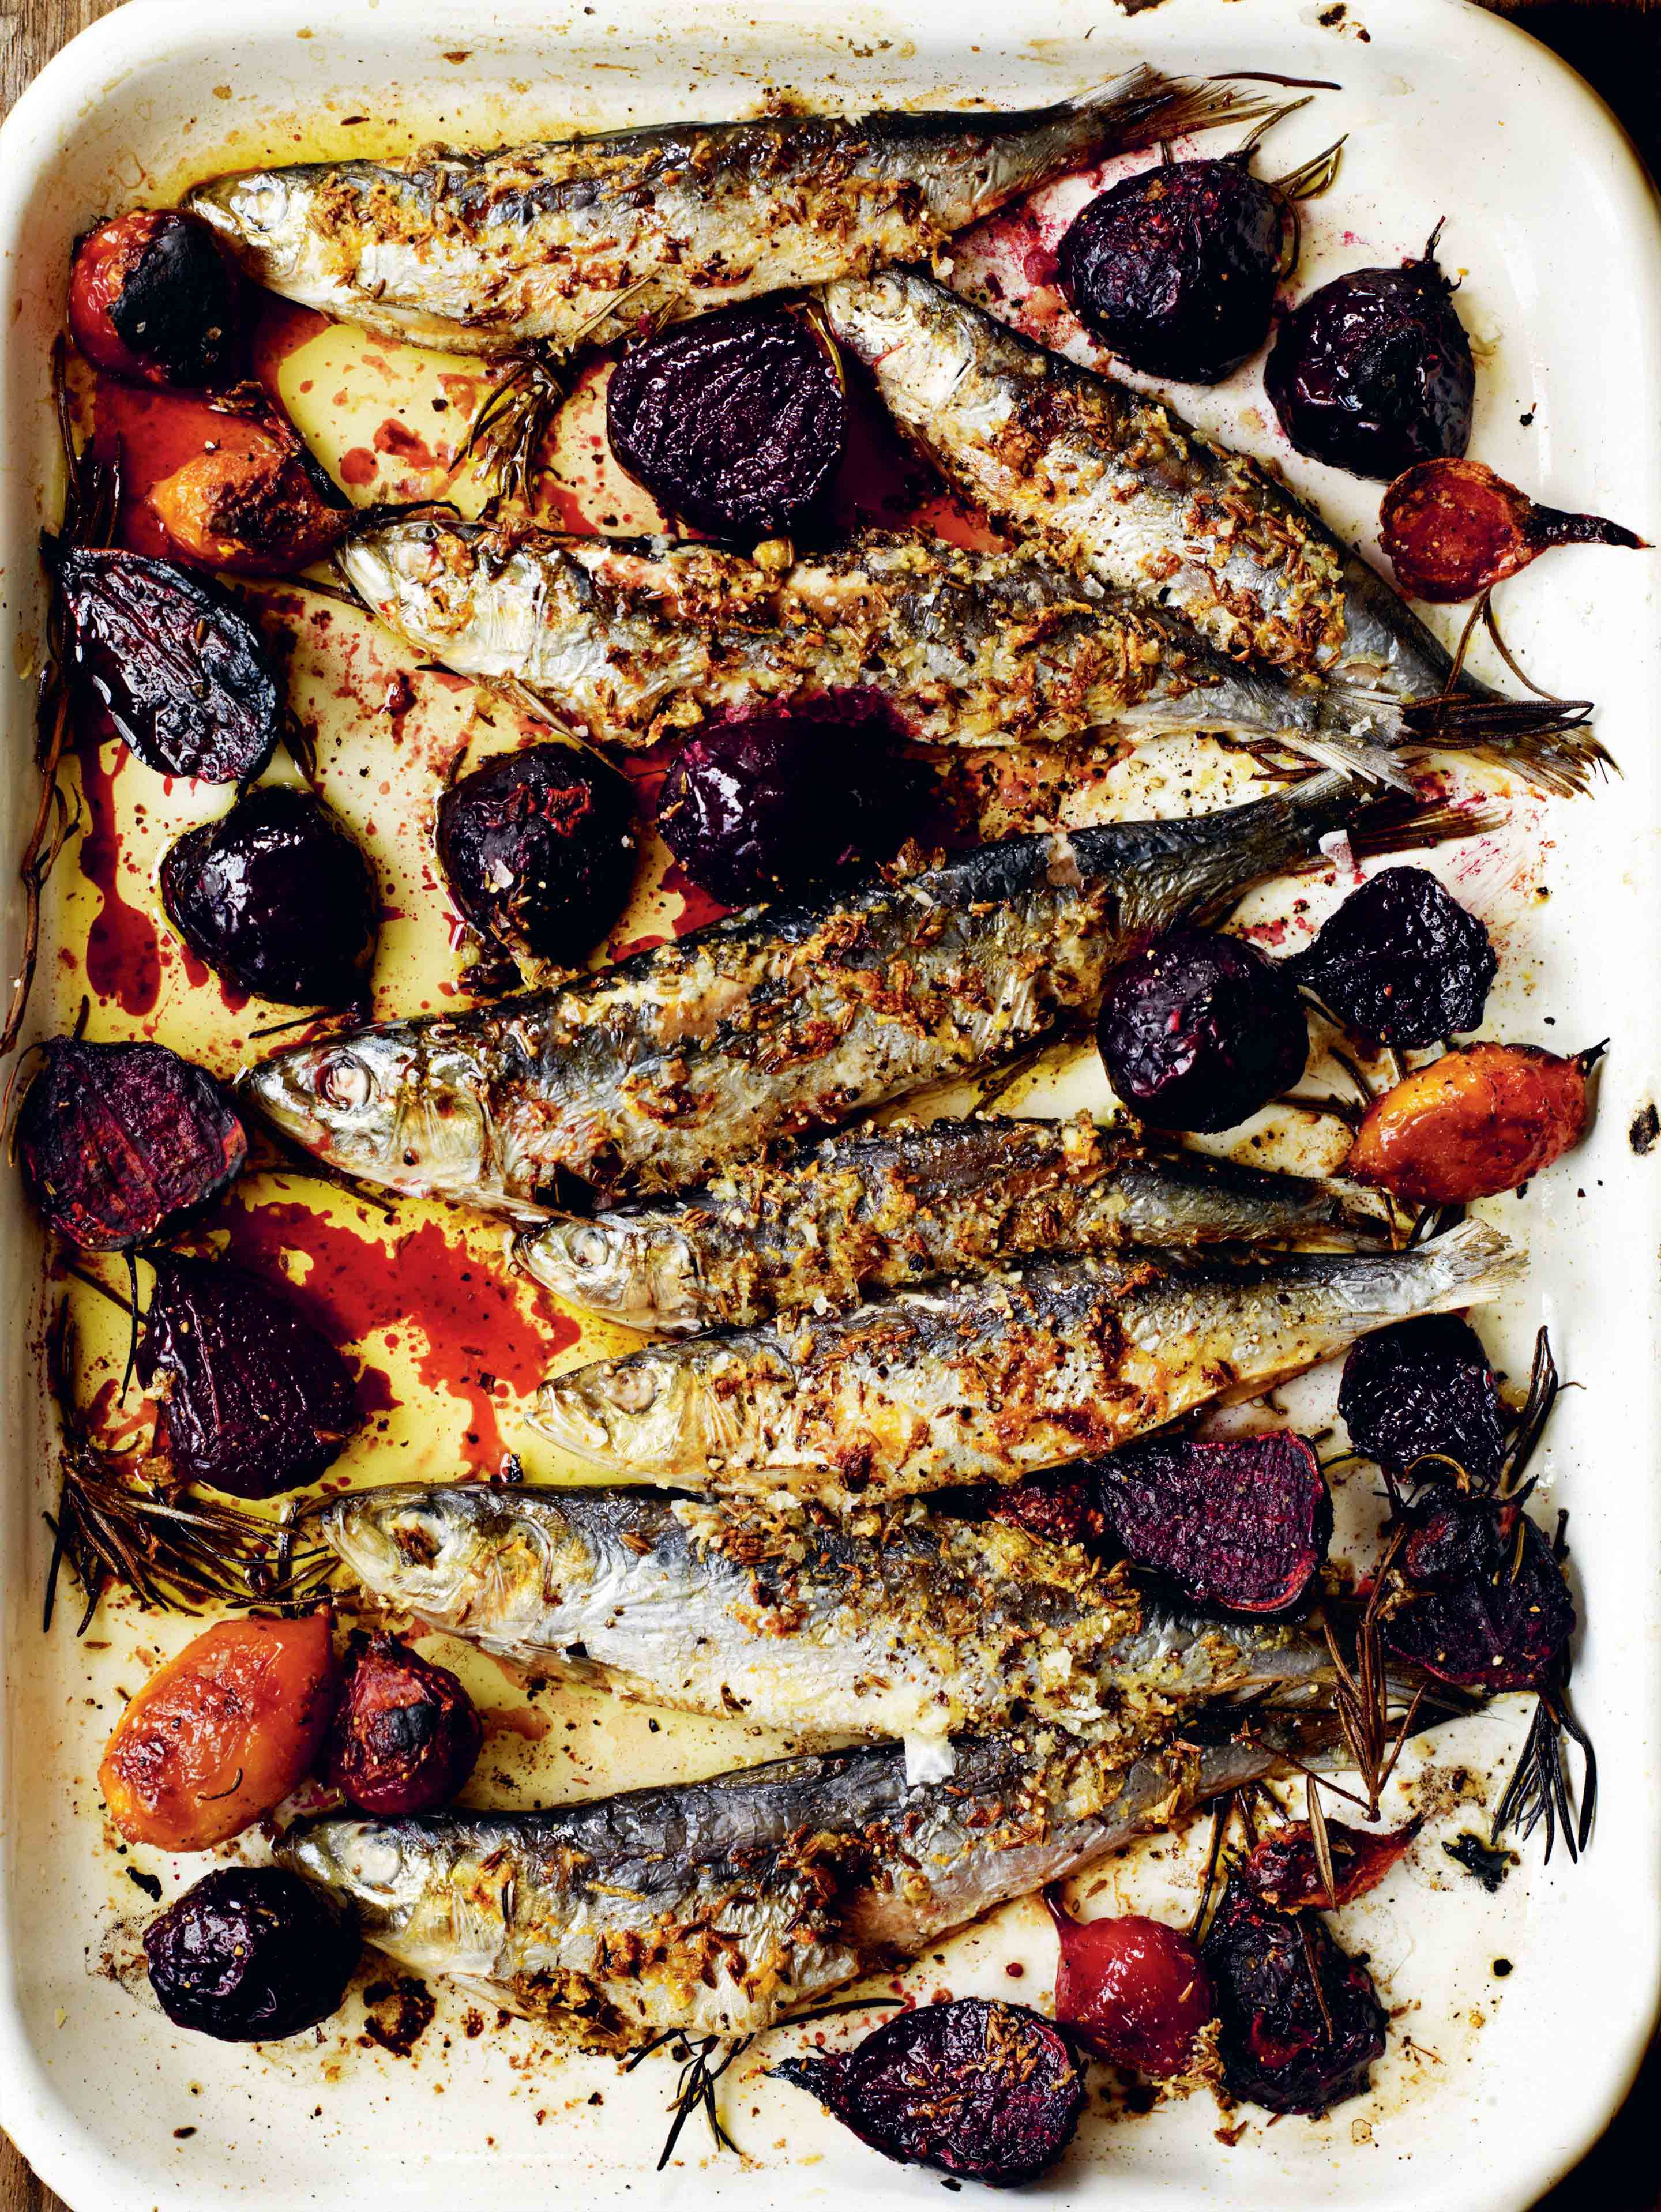 Grilled sardines with beetroot, cumin & rosemary